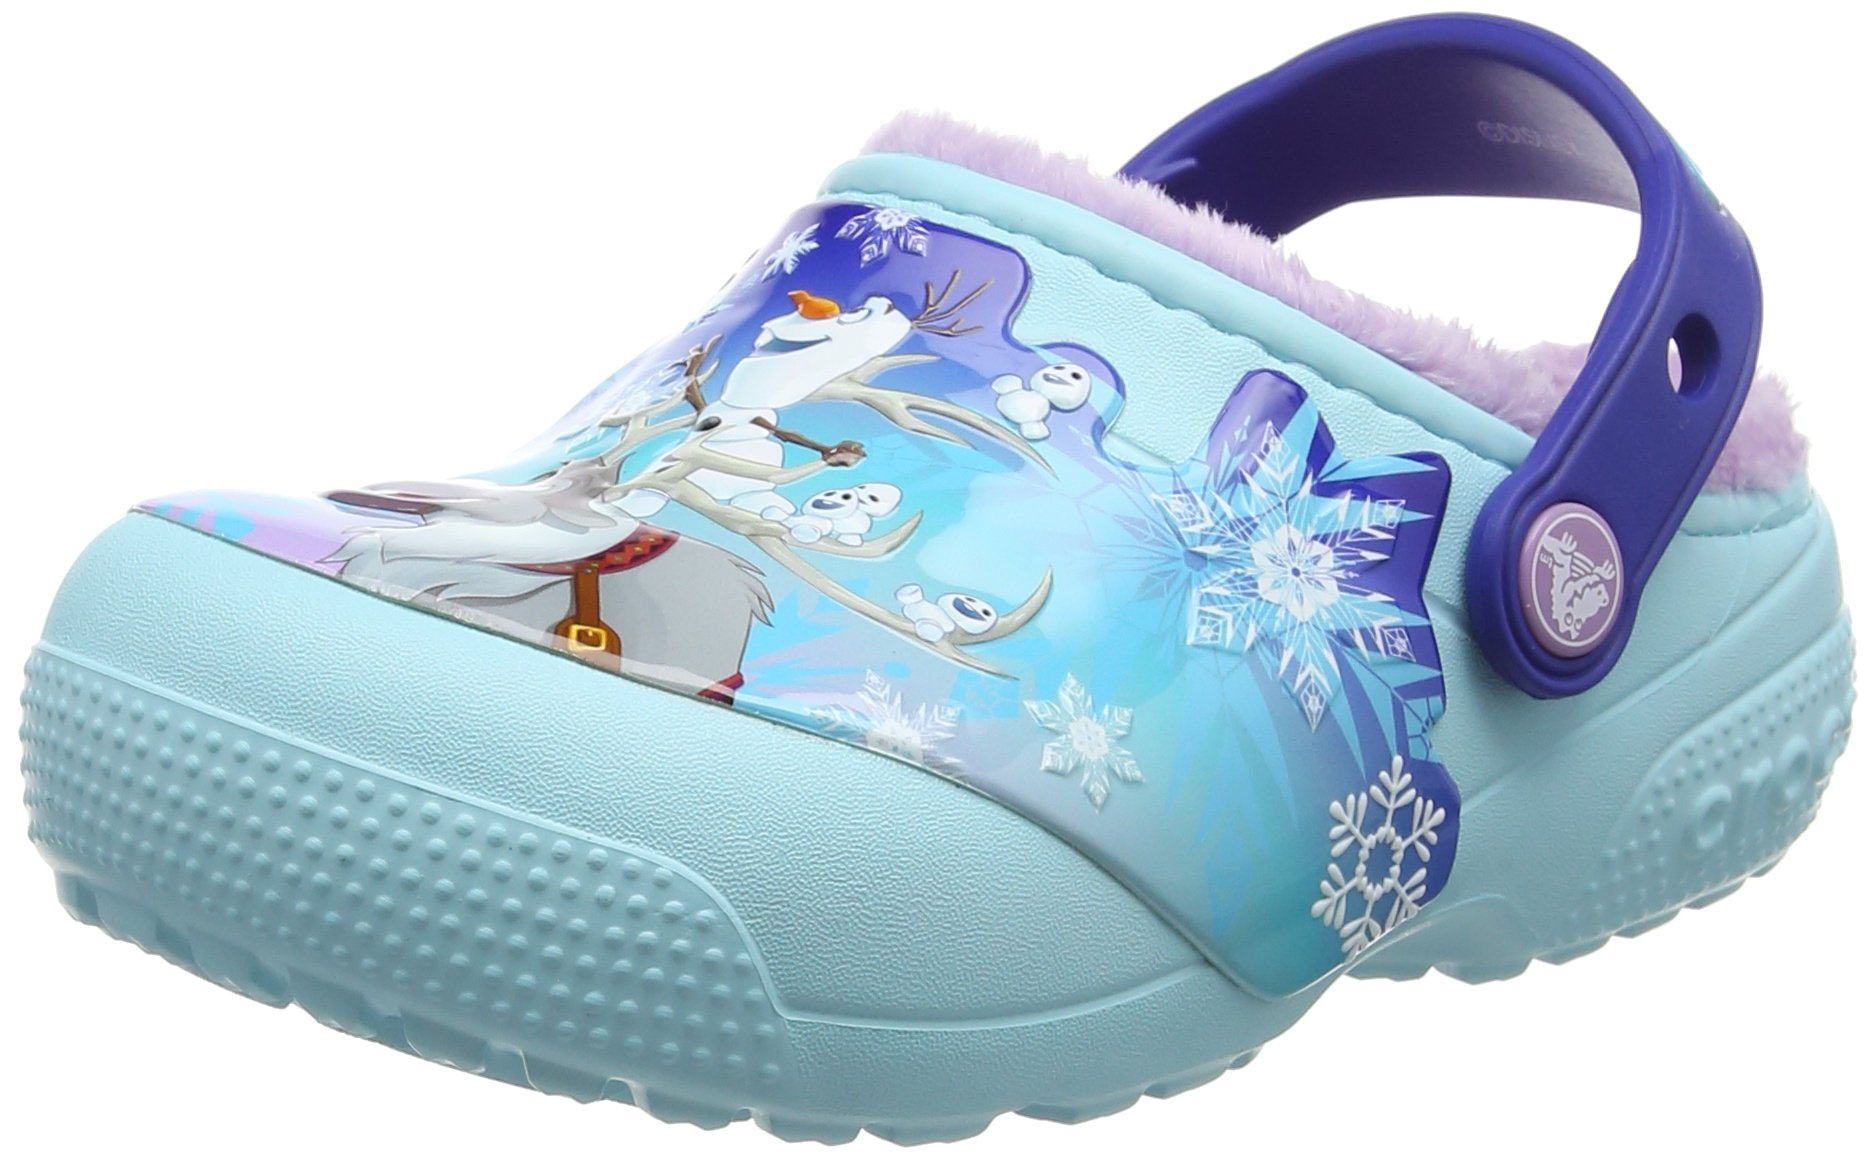 Crocs Girls' Crocsfunlab Lined Frozen Clog, Ice Blue, 6 M US Toddler